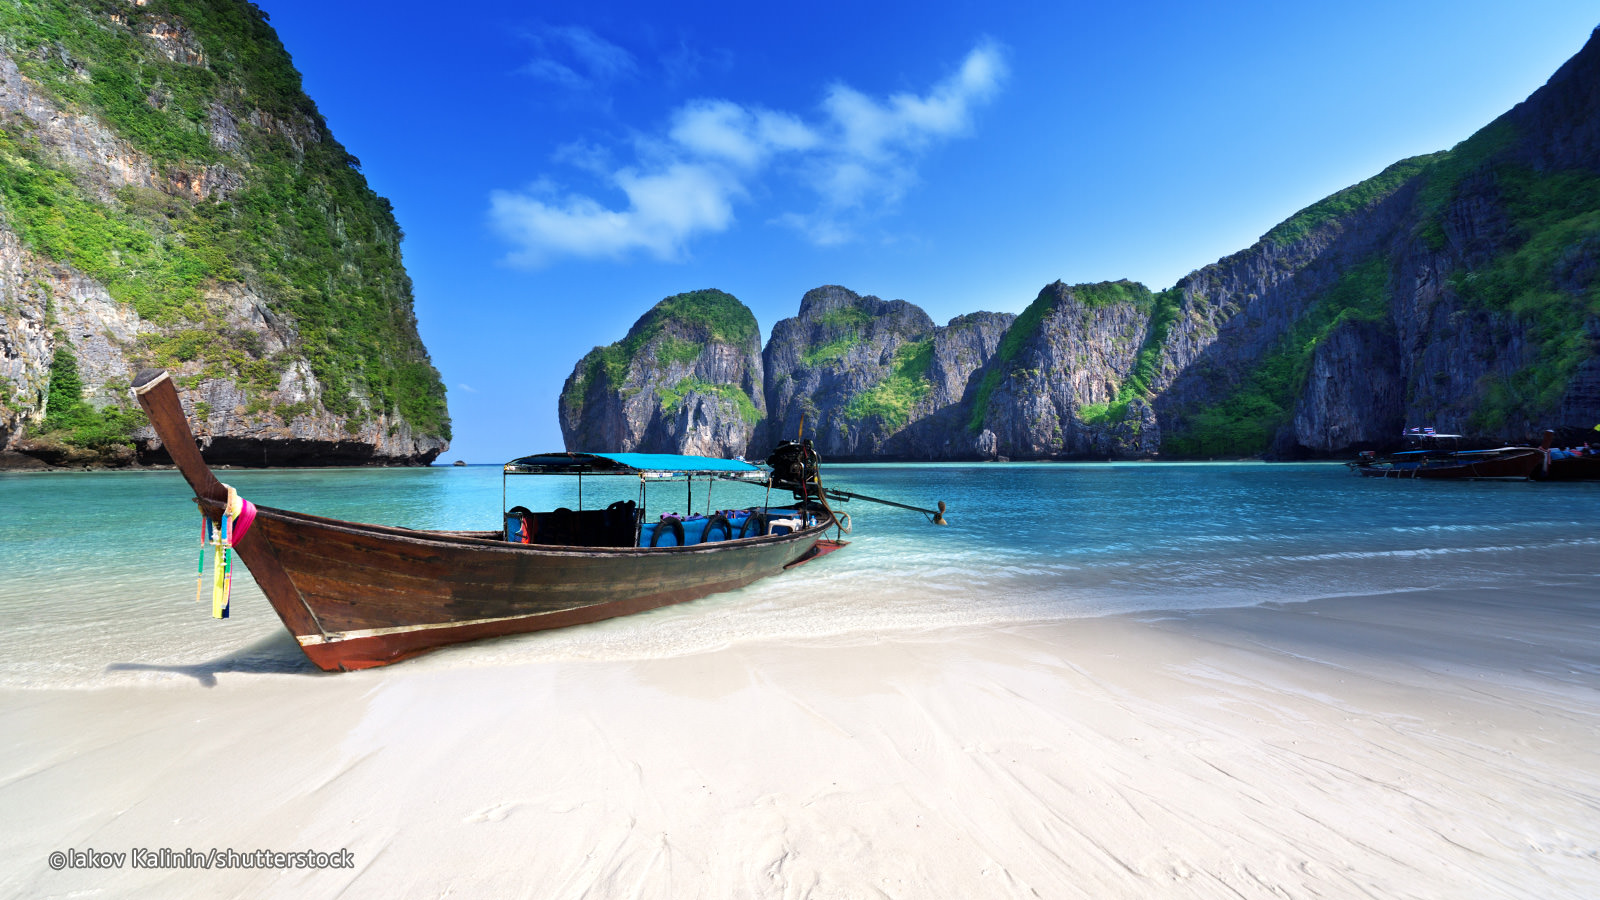 Honeymoon in Phuket? These are the top 5 Things to do for an upgraded experience!